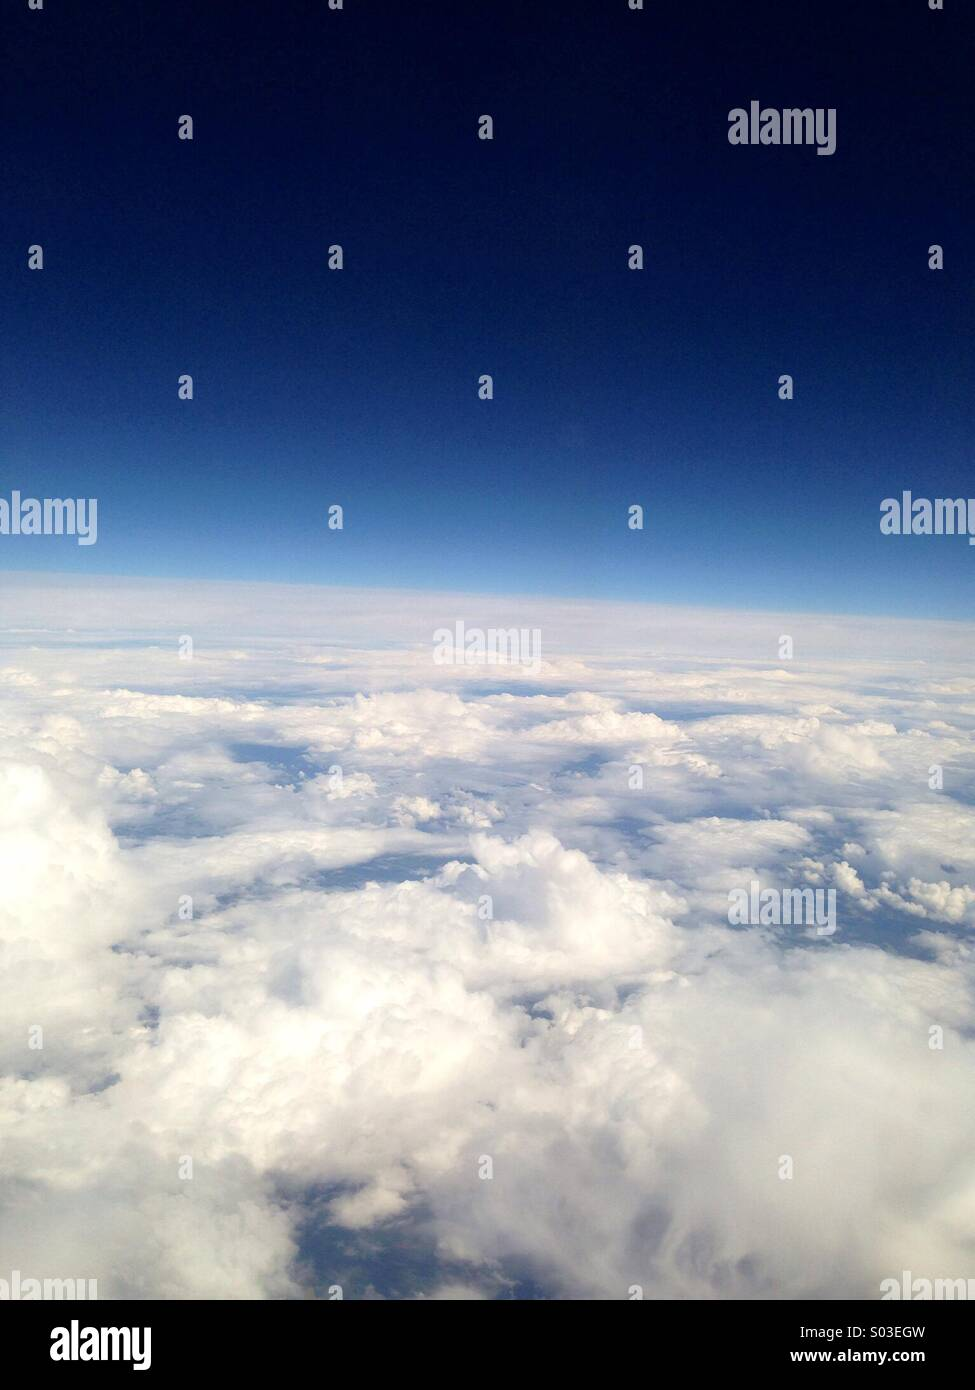 Blue sky above white fluffy clouds - Stock Image